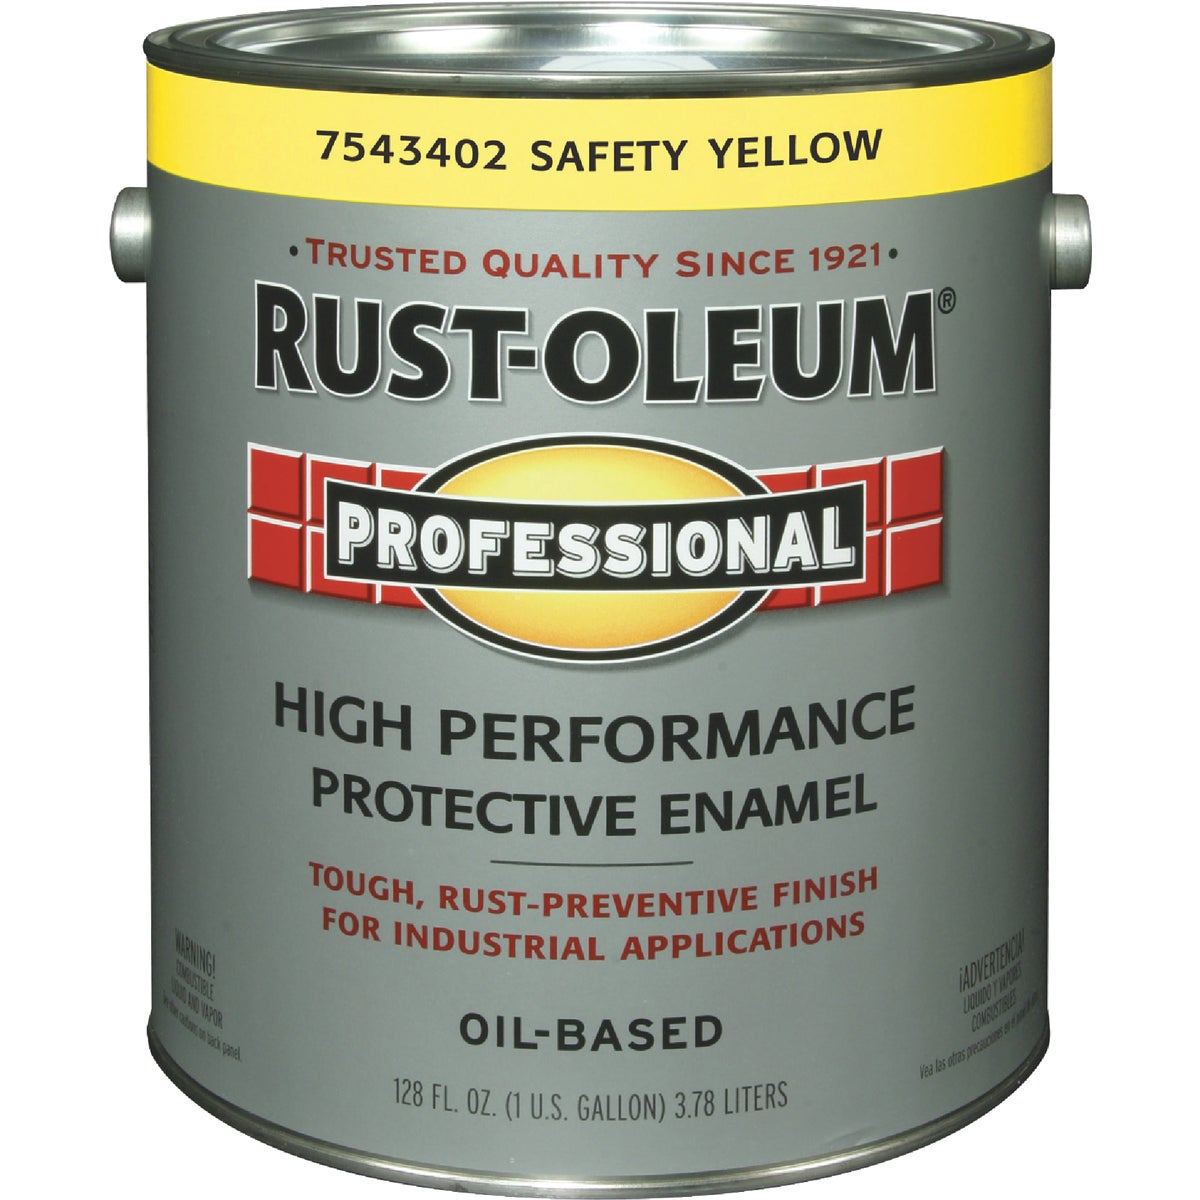 SAFETY YELLOW PRO ENAMEL